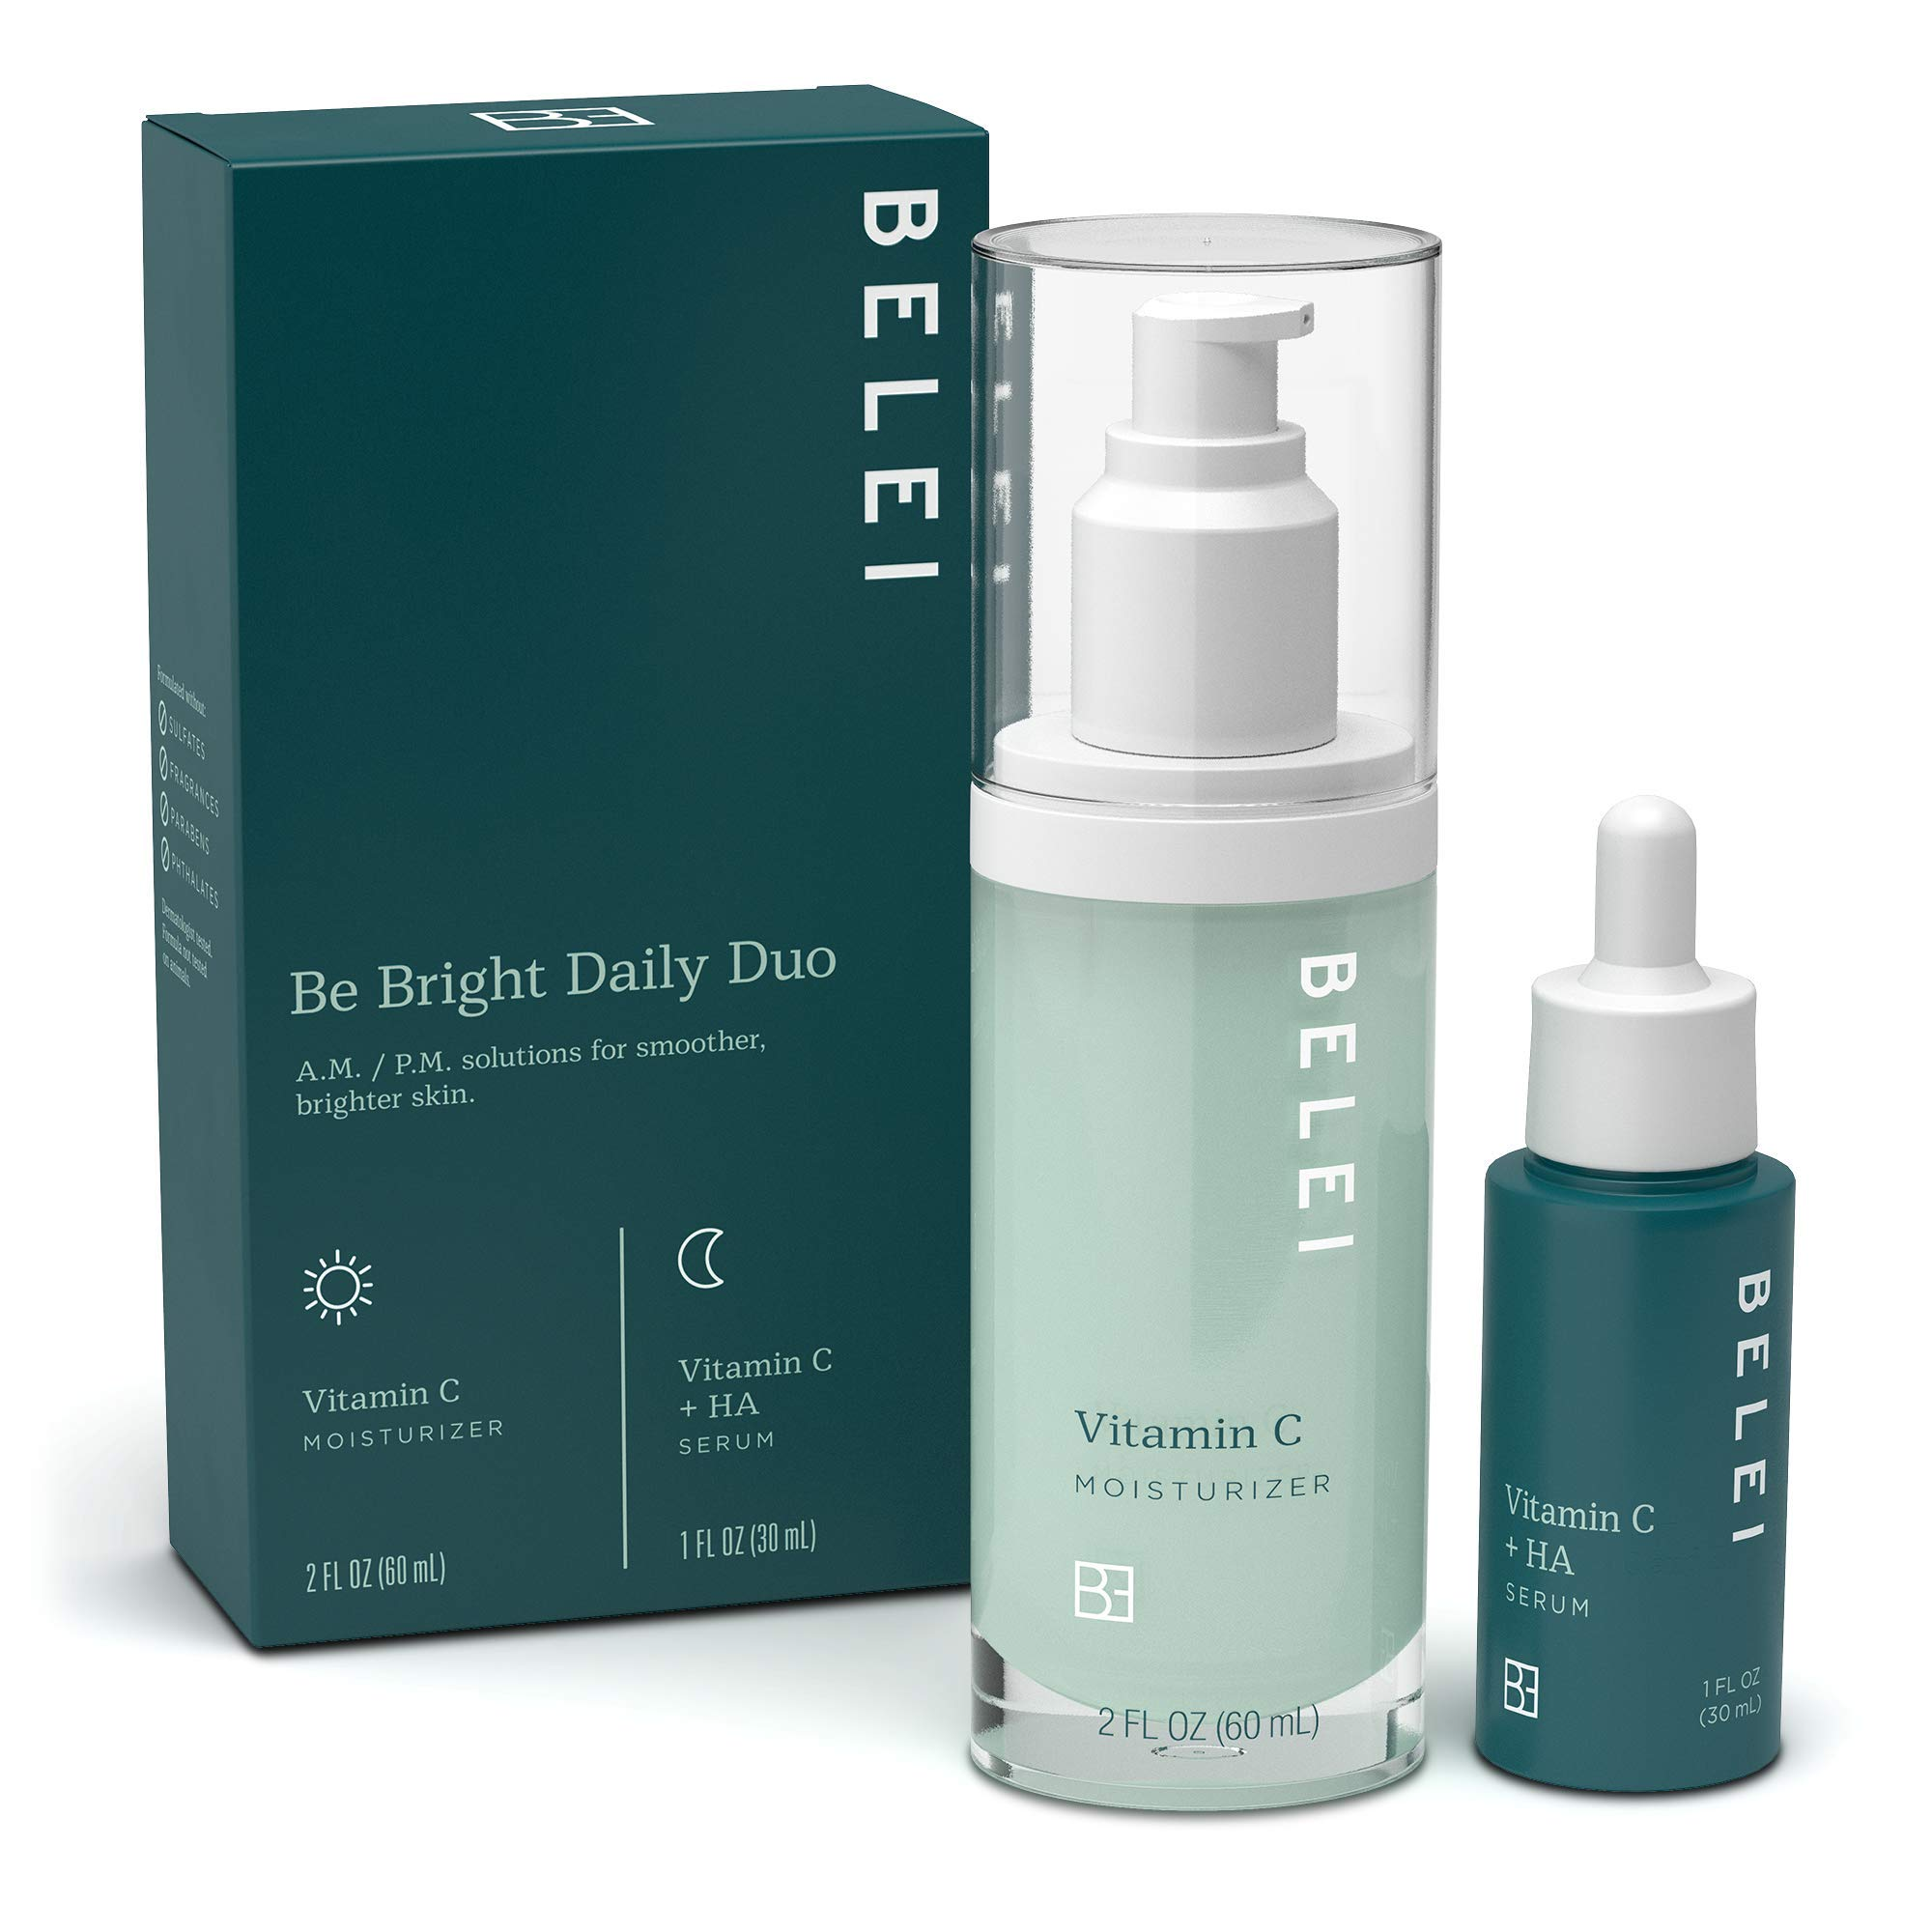 Belei by Amazon: 'Be Bright' Daily Duo Skin Care Starter Kit (Vitamin C Moisturizer and Vitamin C + HA Serum) Helps with Brightening, Hydration, and Dullness